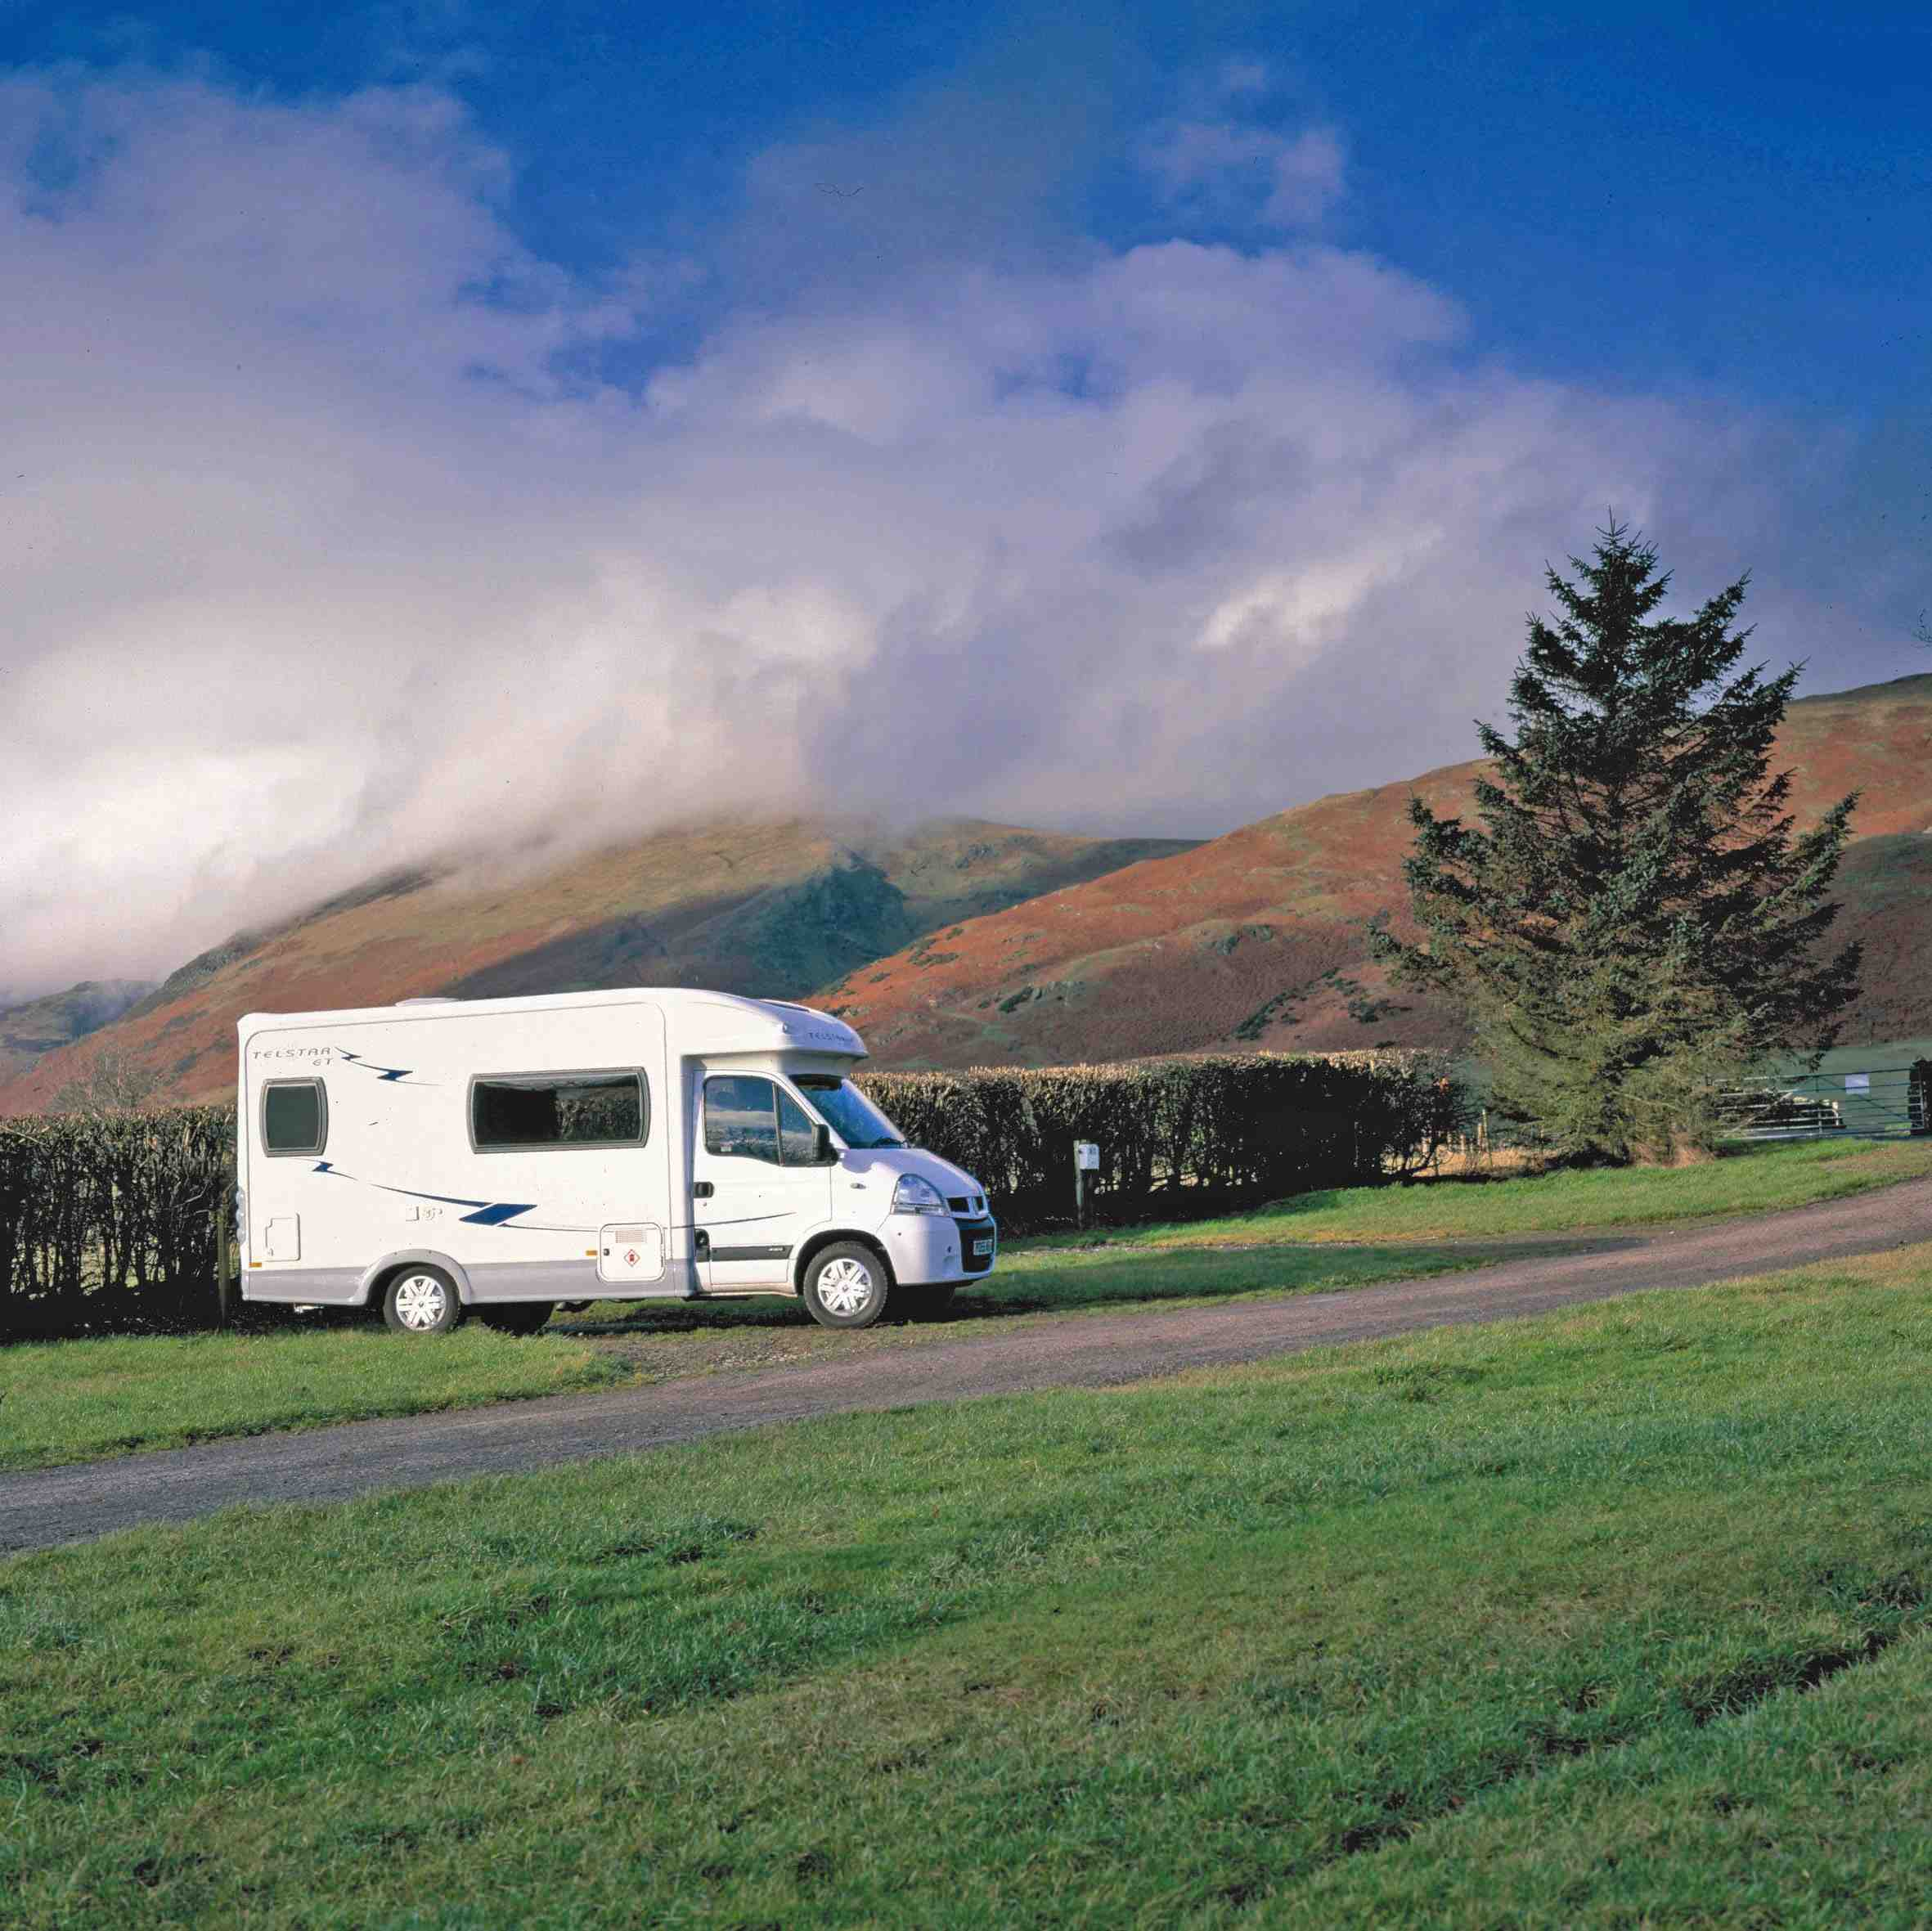 Preserving your motorhome battery to power your security devices